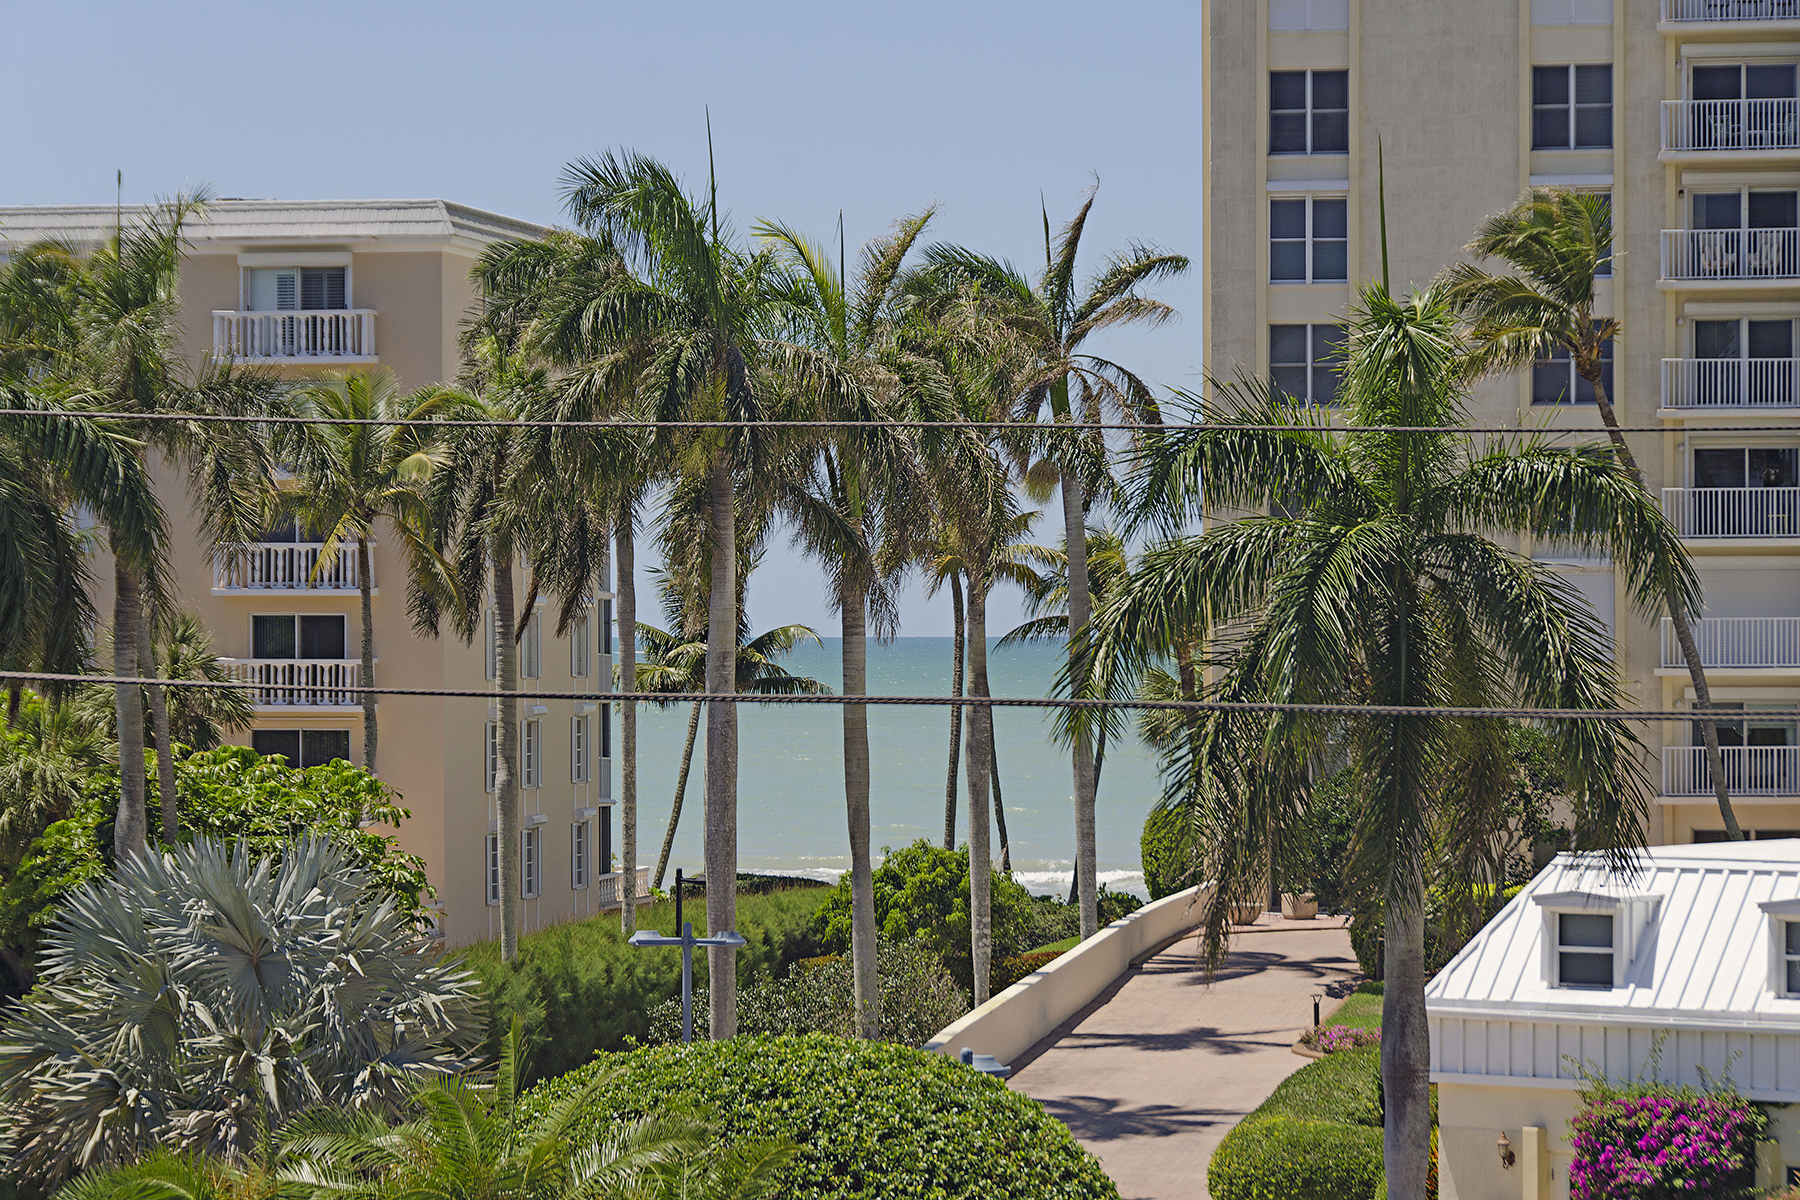 Condominium for Sale at COQUINA SANDS DEL MAR 1300 Gulf Shore Blvd N 406 Naples, Florida, 34102 United States